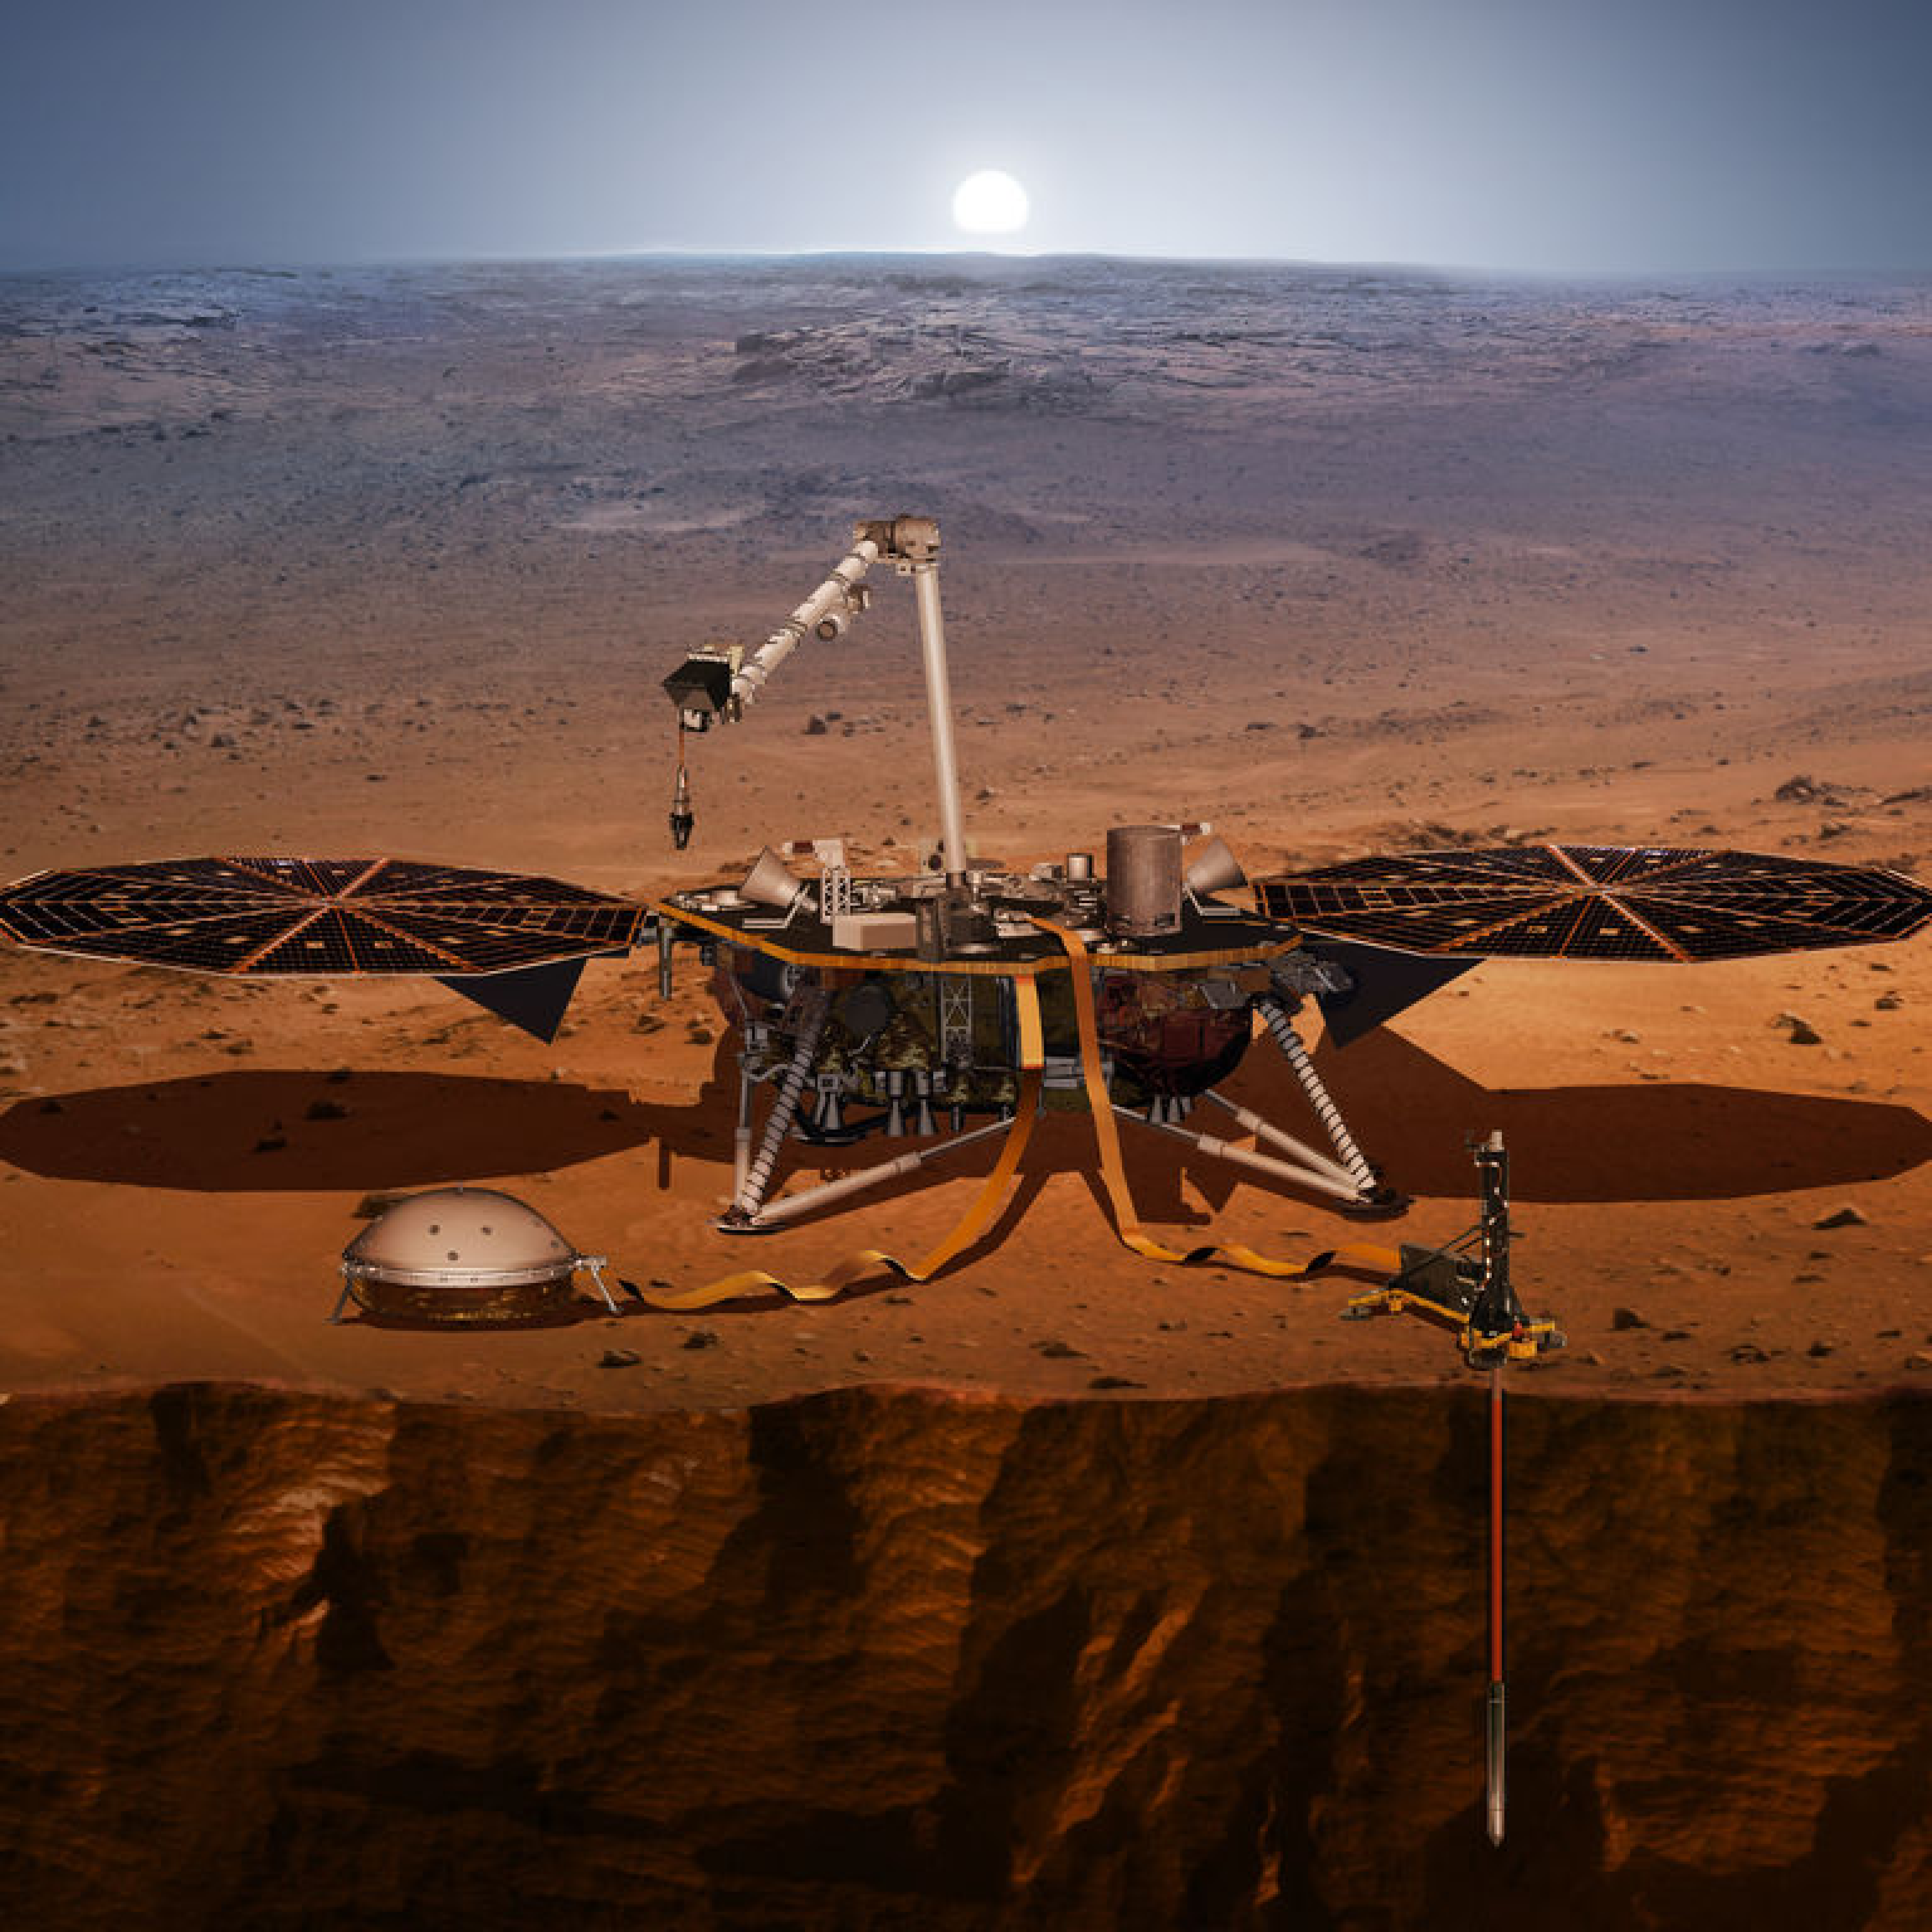 Castrol à bord d'InSight, la mission historique d'exploration de Mars de la NASA